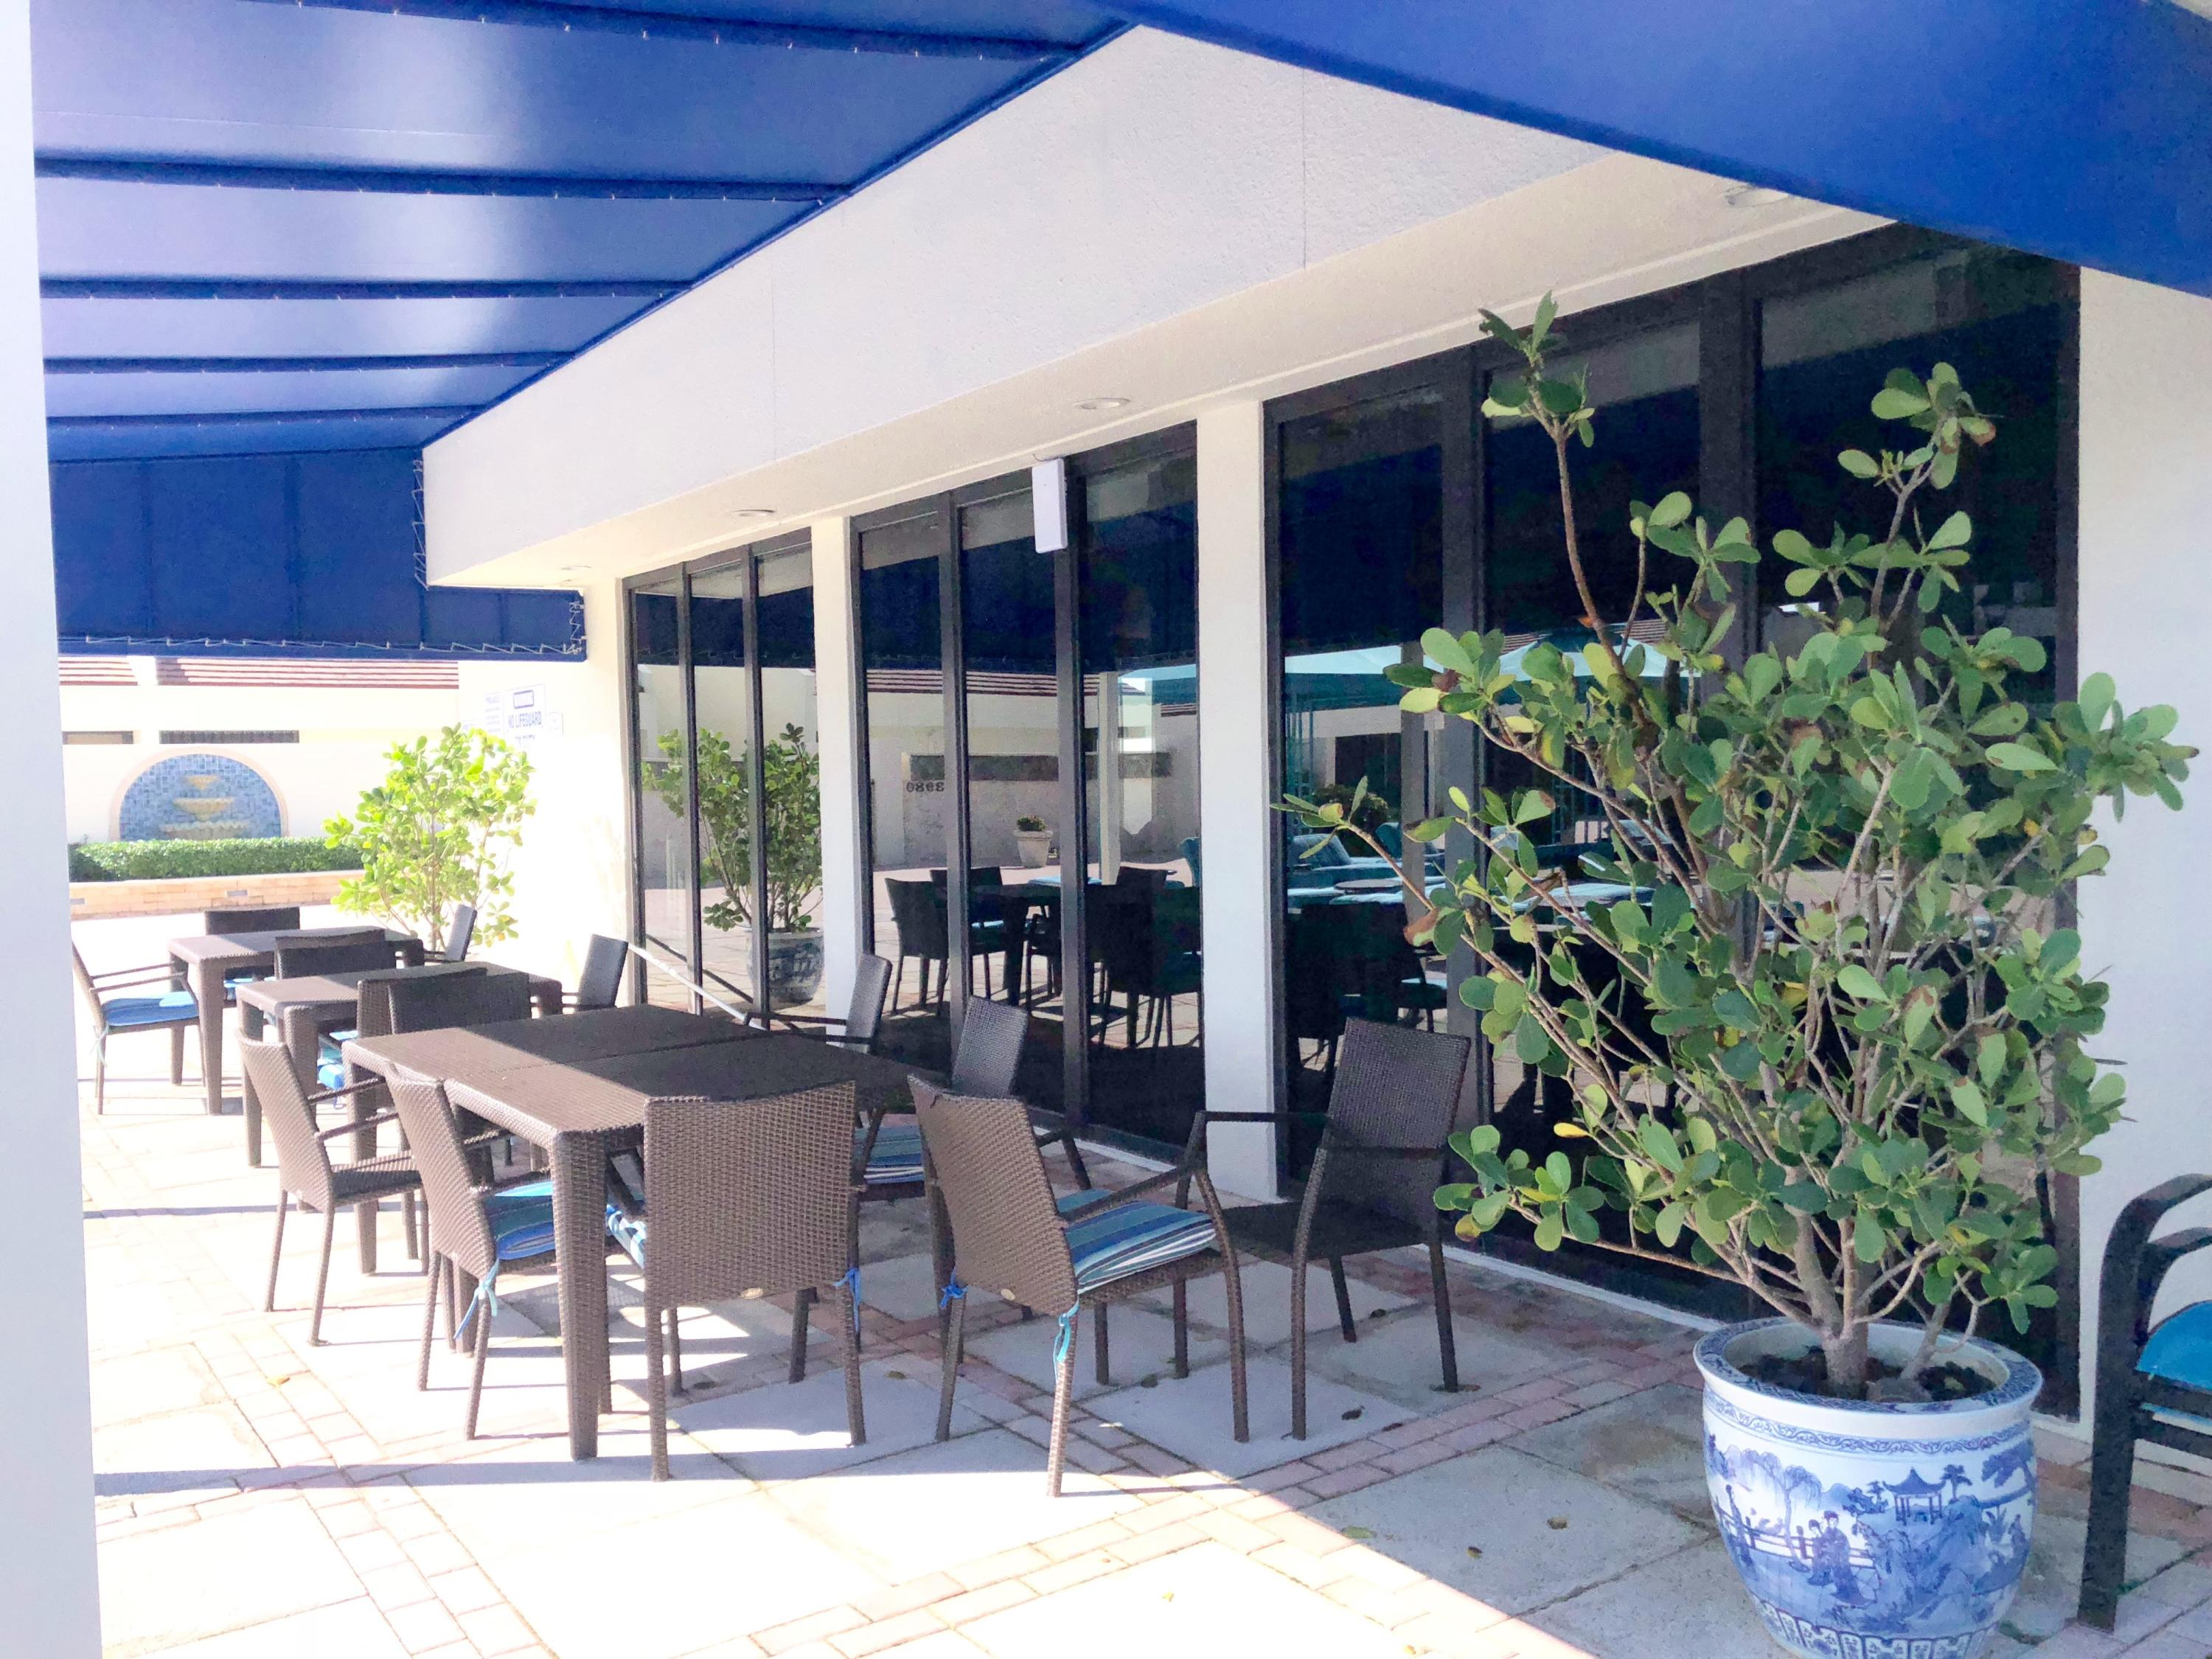 LE CLUB RESTAURANT OUTDOOR SEATING